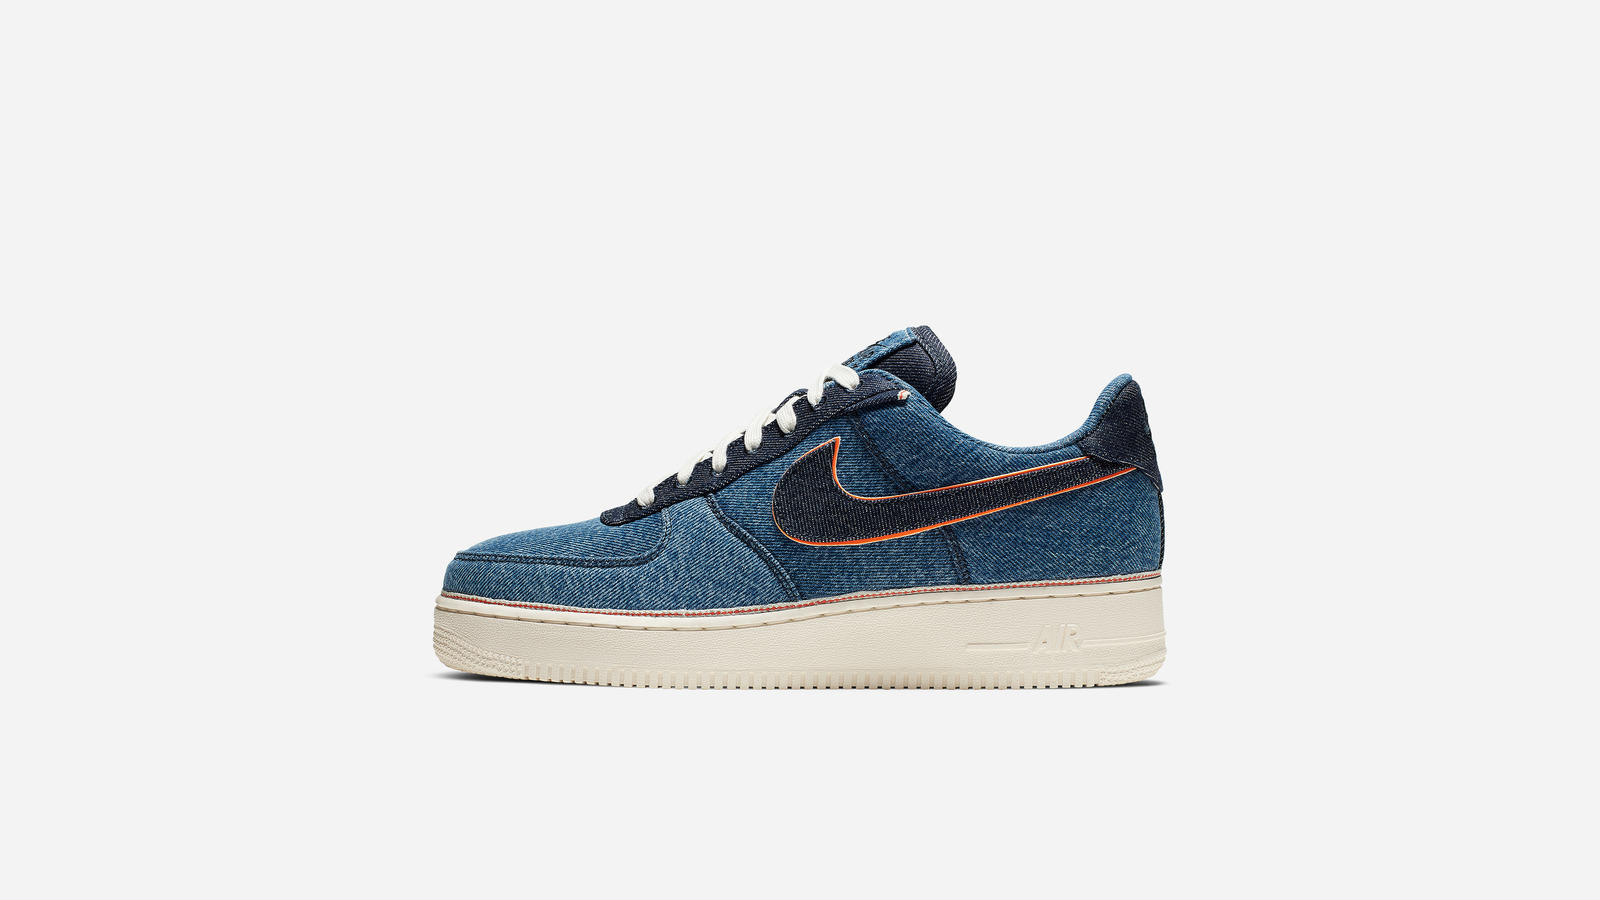 Nike Air Force 1 x 3x1 Denim 2